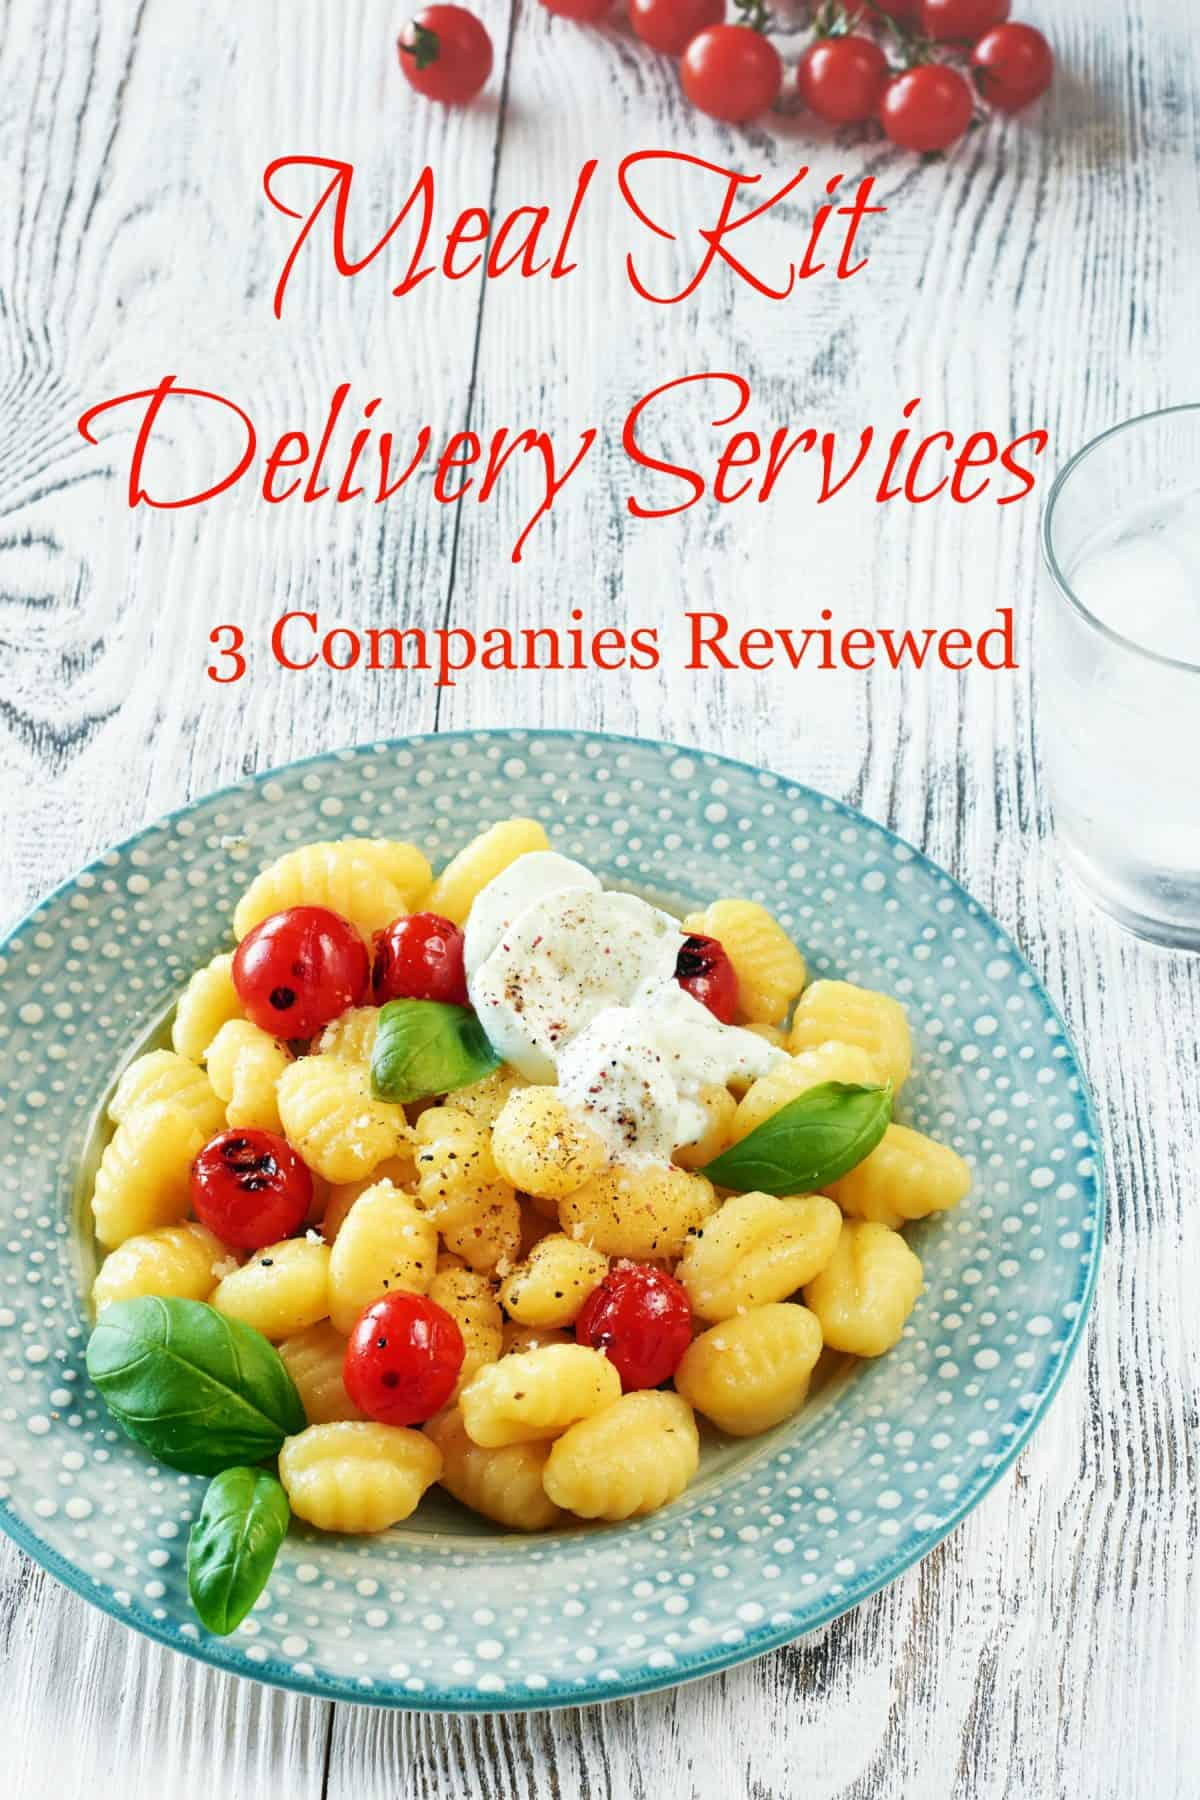 Meal Kit Delivery Services 3 Companies Reviewed